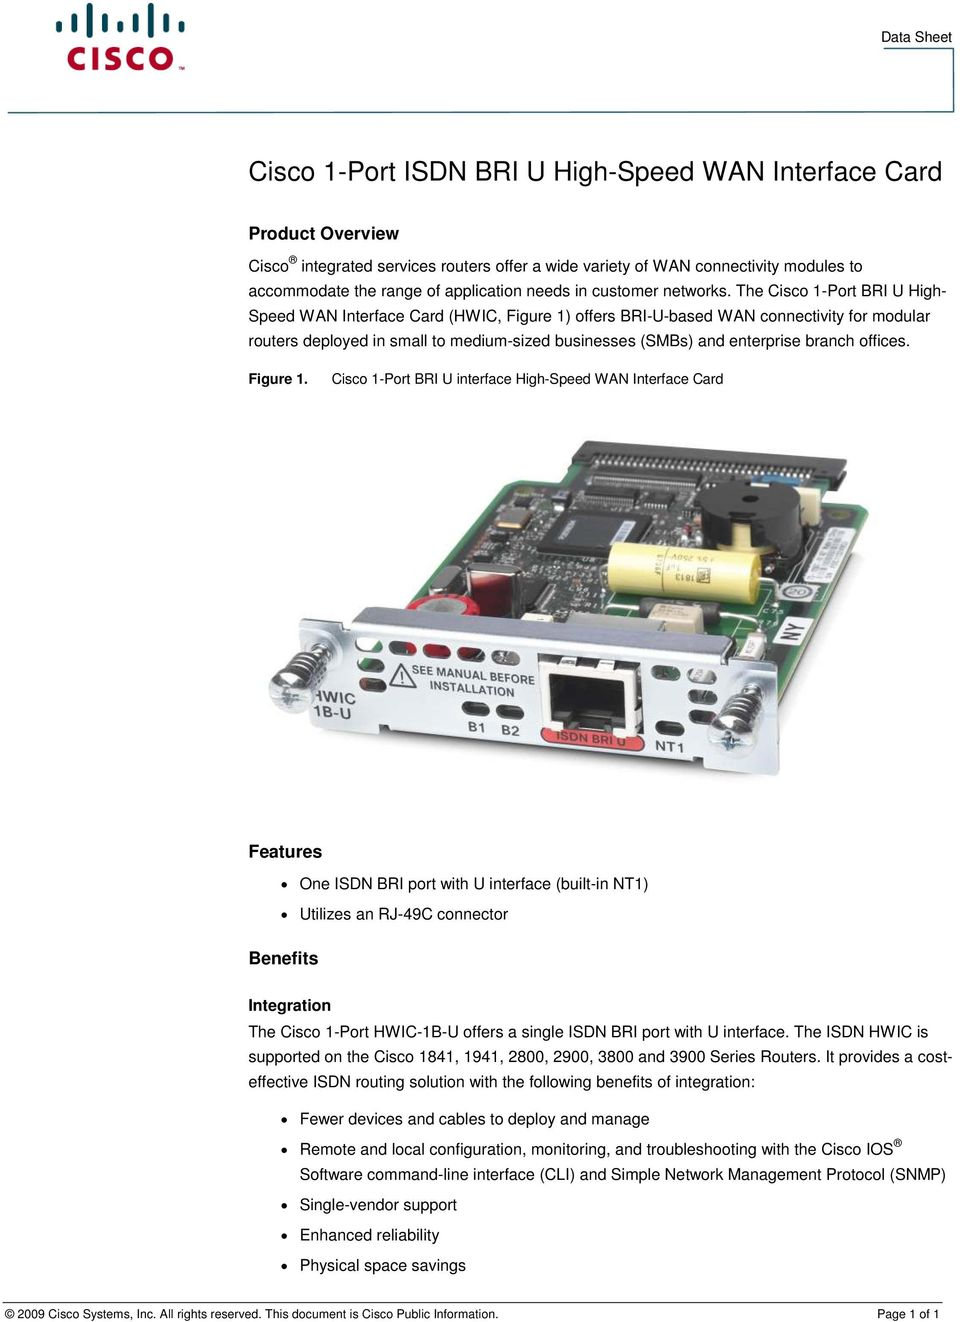 The Cisco 1-Port BRI U High- Speed WAN Interface Card (HWIC, Figure 1) offers BRI-U-based WAN connectivity for modular routers deployed in small to medium-sized businesses (SMBs) and enterprise